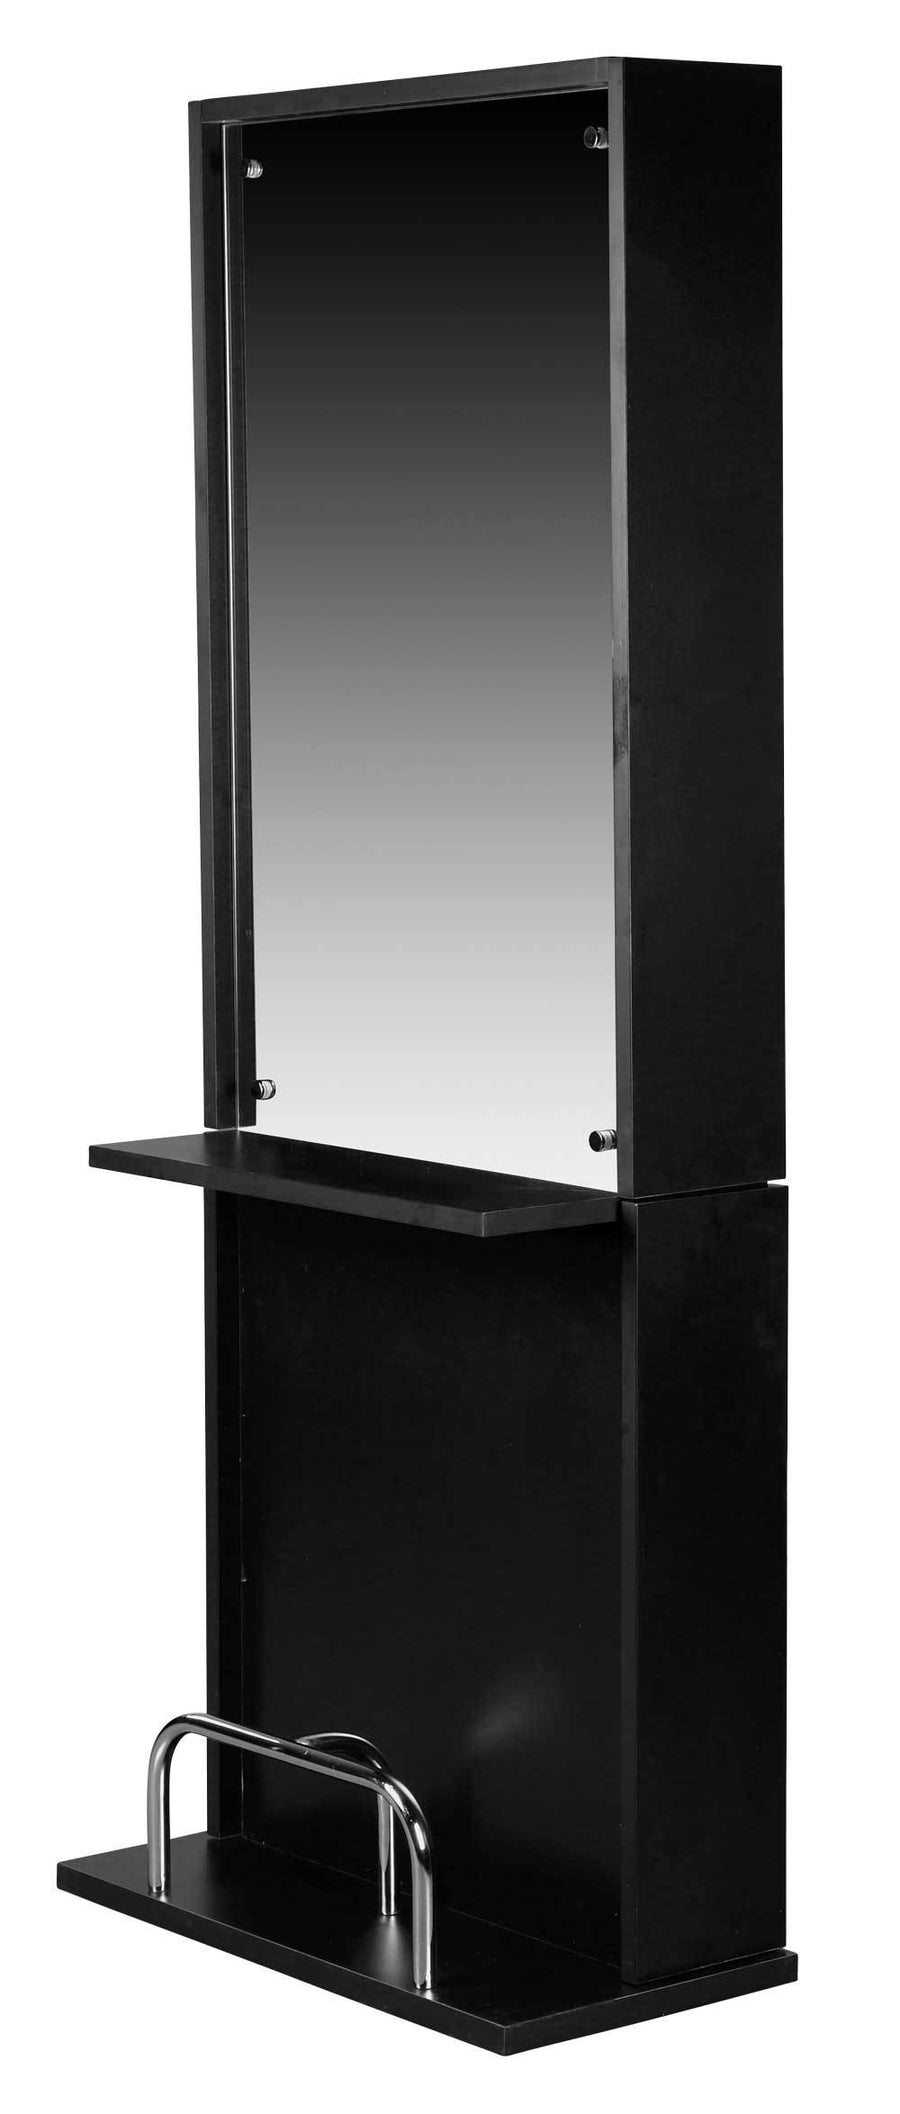 "Icarus ""Libby"" Black Salon Styling Station With Mirror Styling Stations & Cabinets Icarus Single"